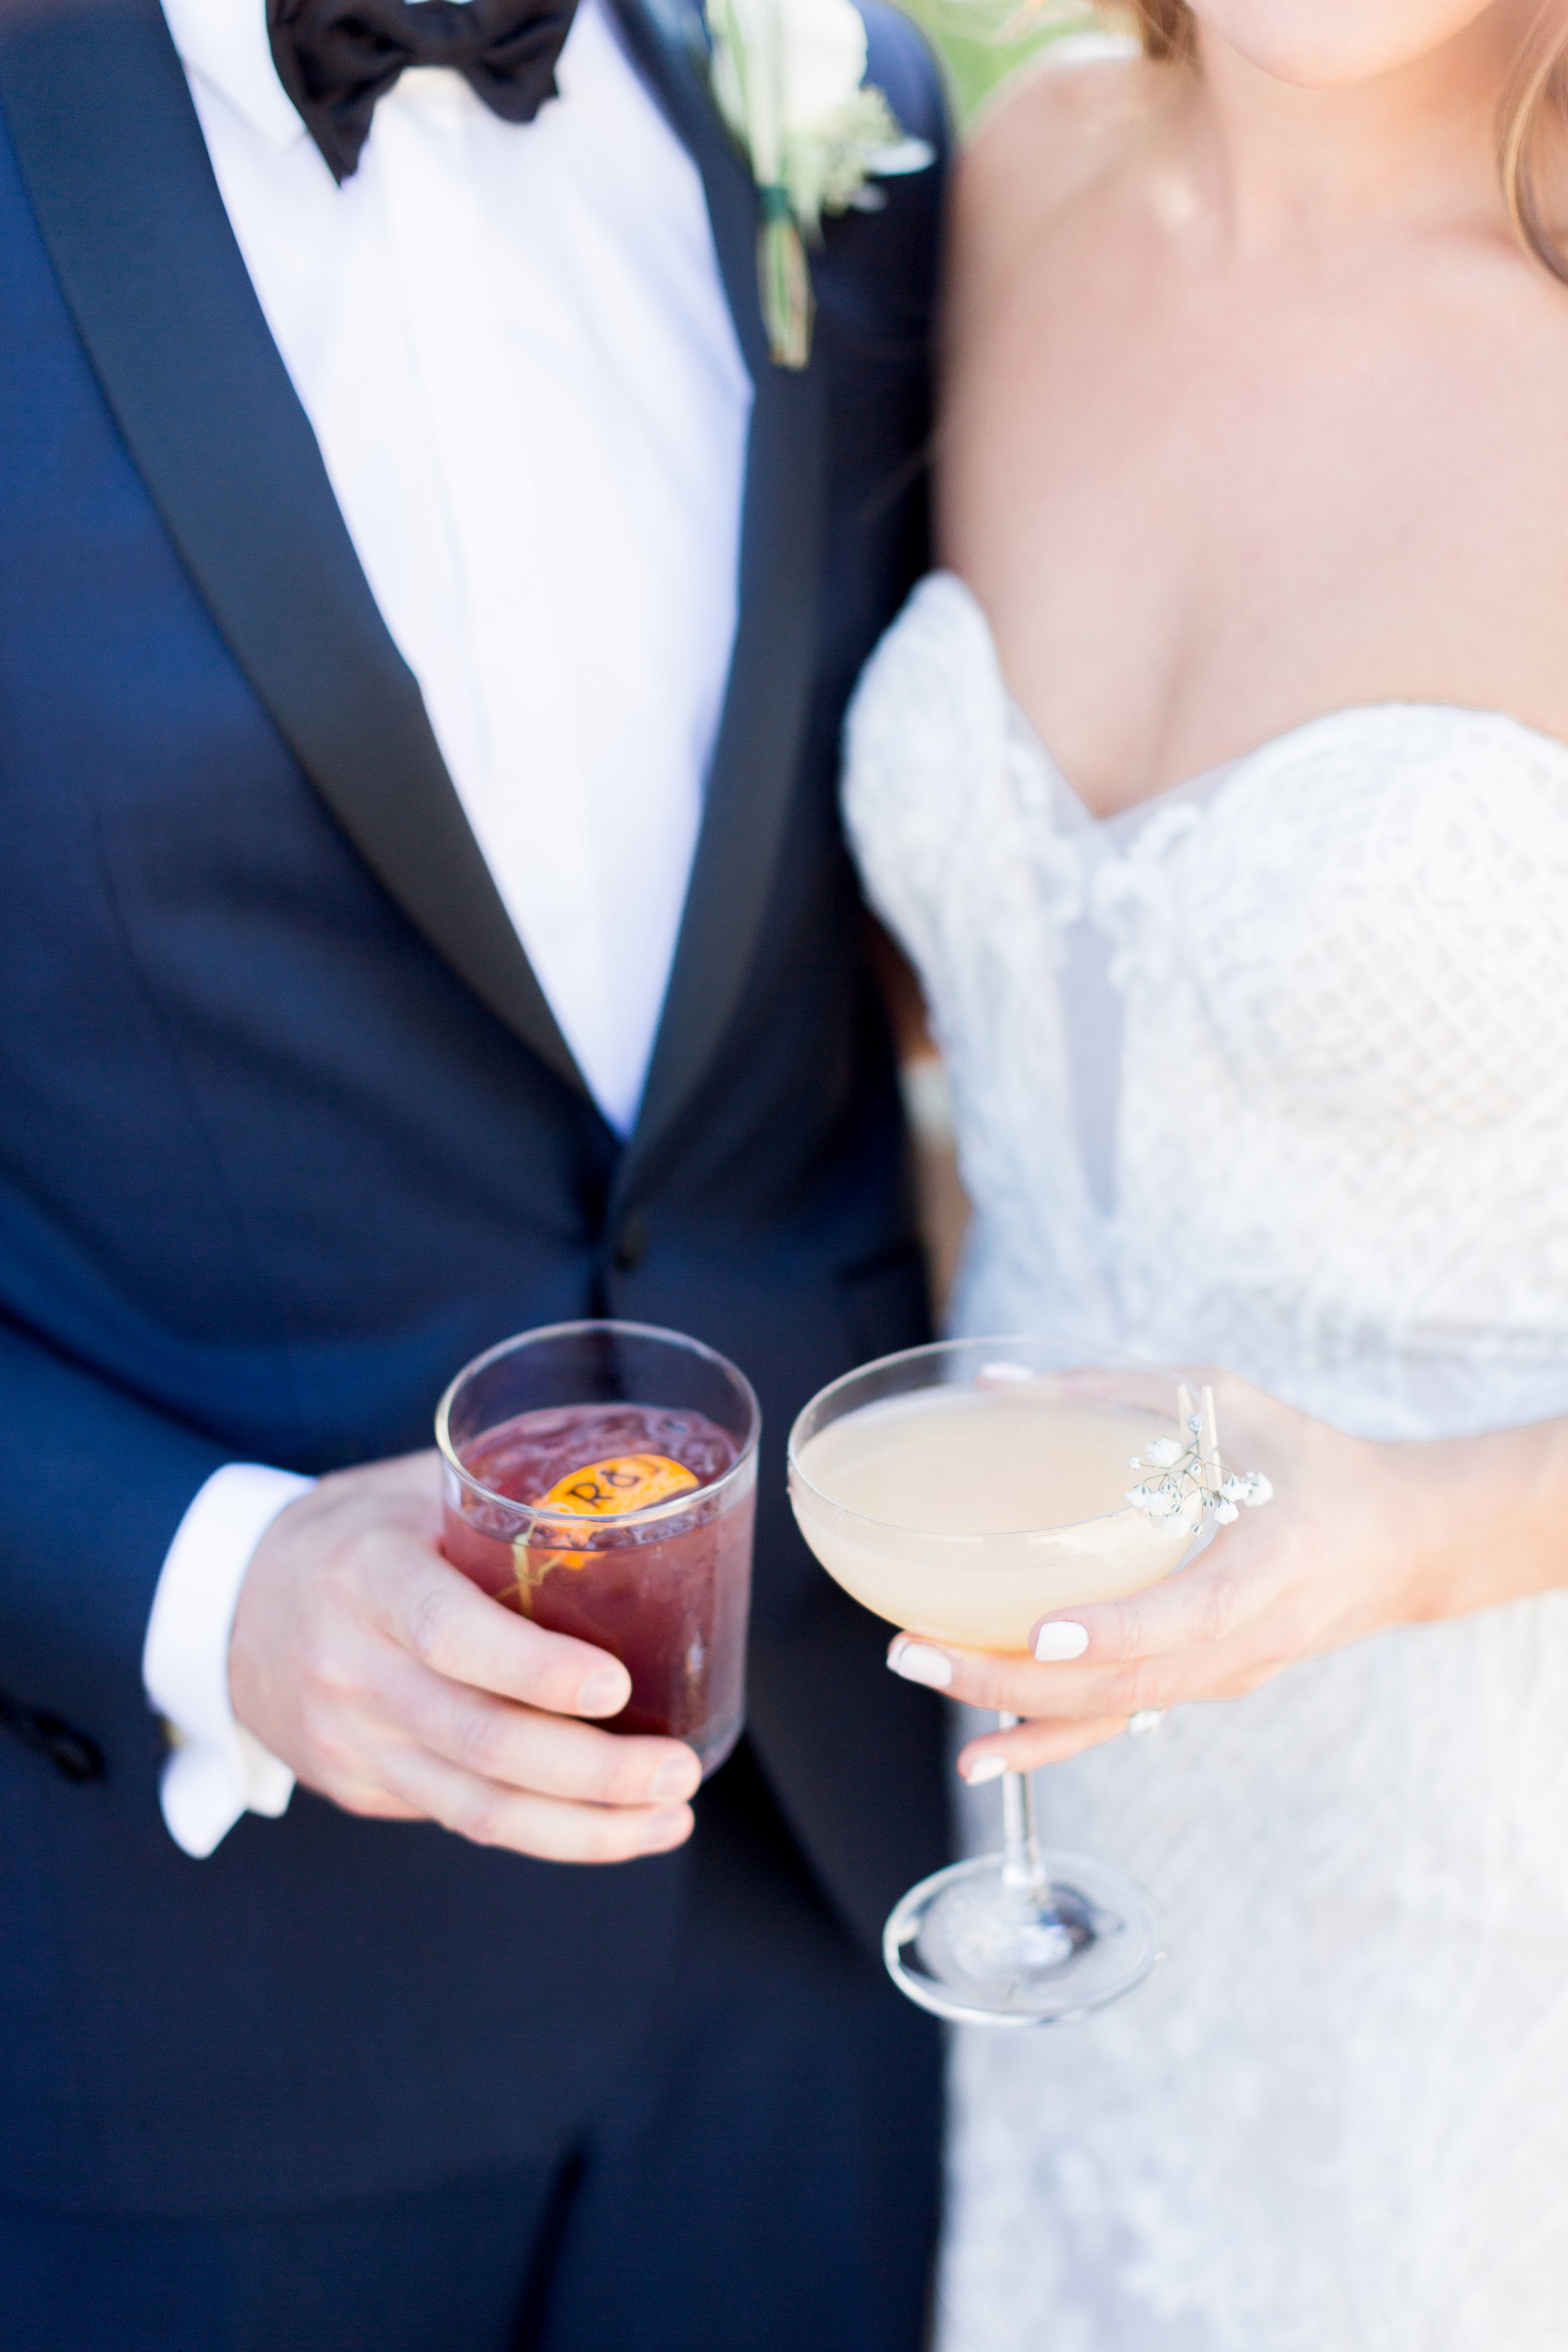 Napa-wine-wedding-photographer-captures-bride-and-groom-signature-cocktailsjpg